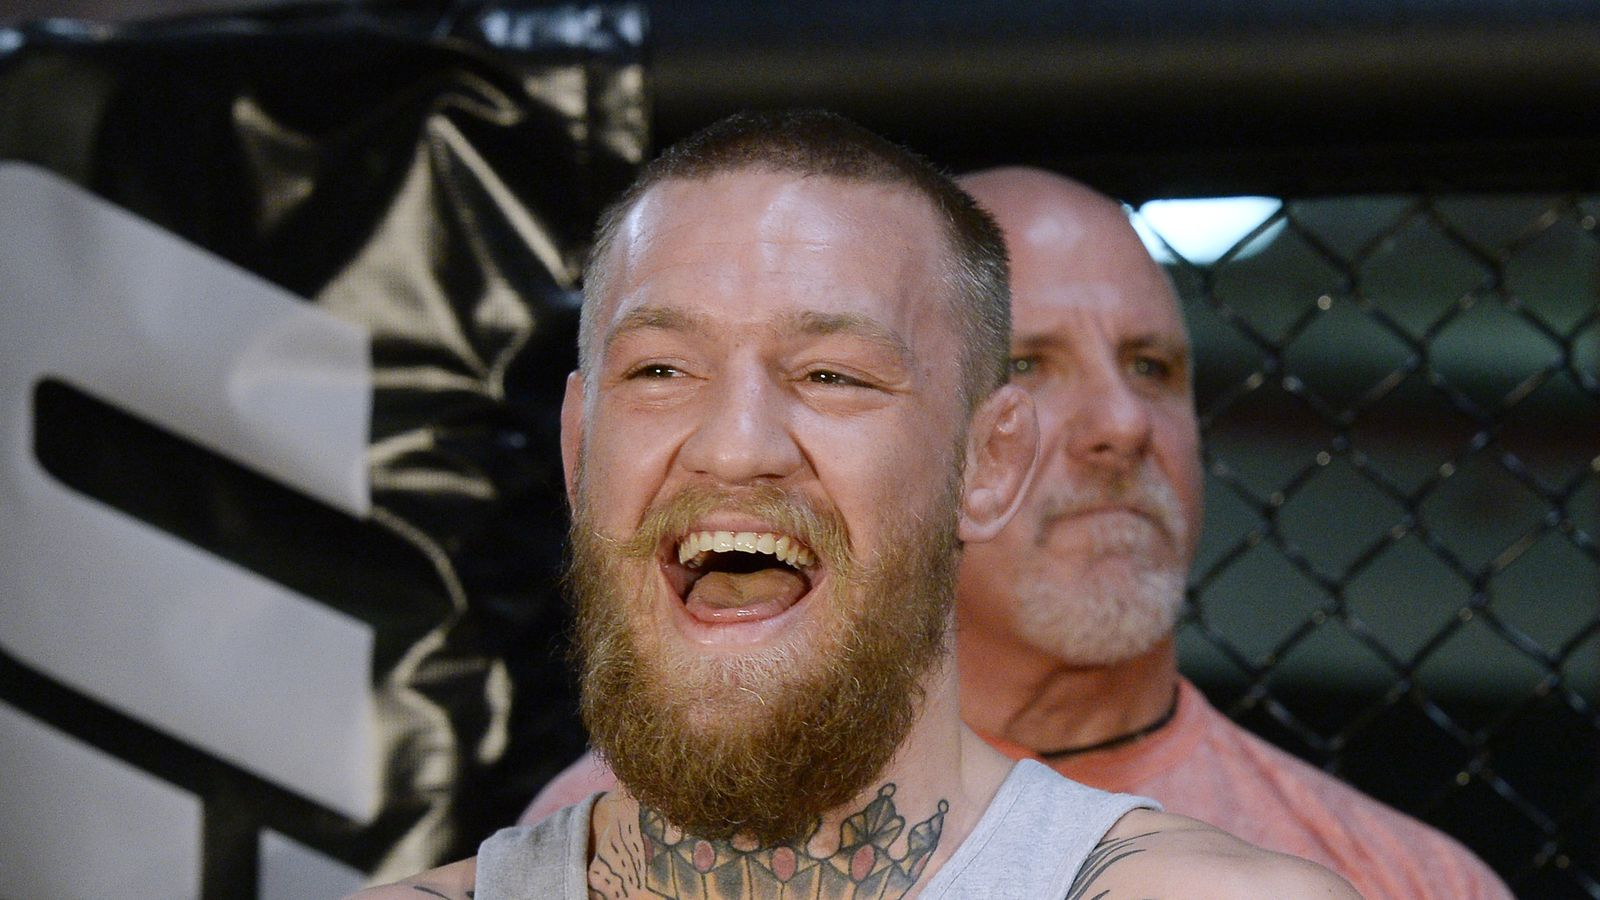 Conor McGregor won't die for UFC because he's not a 'bad motherf—ker' like Al Iaquinta